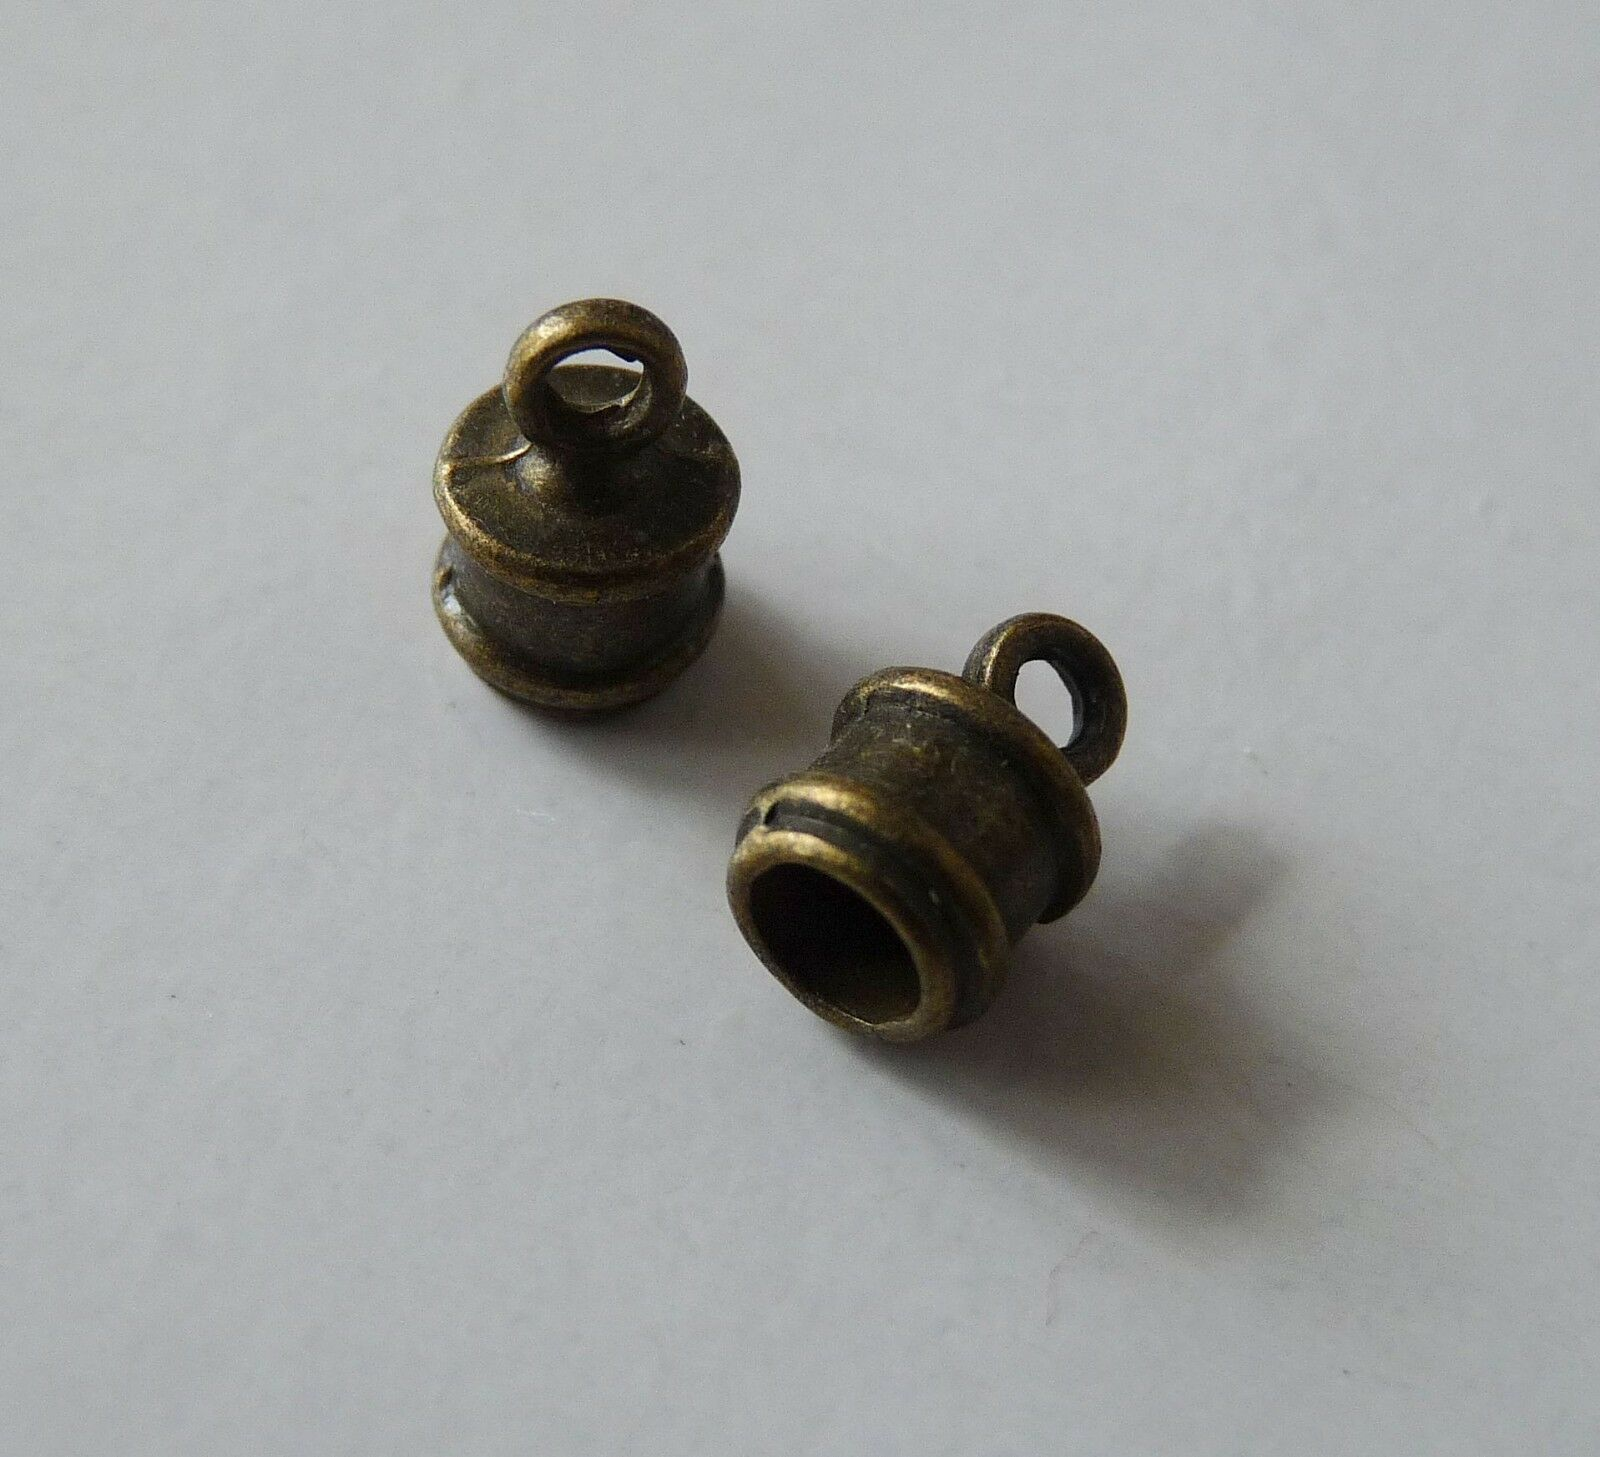 10x Leather Cord End Caps Bead Stoppers Silver//Bronze Tone Bracelet Tips Fit 3mm